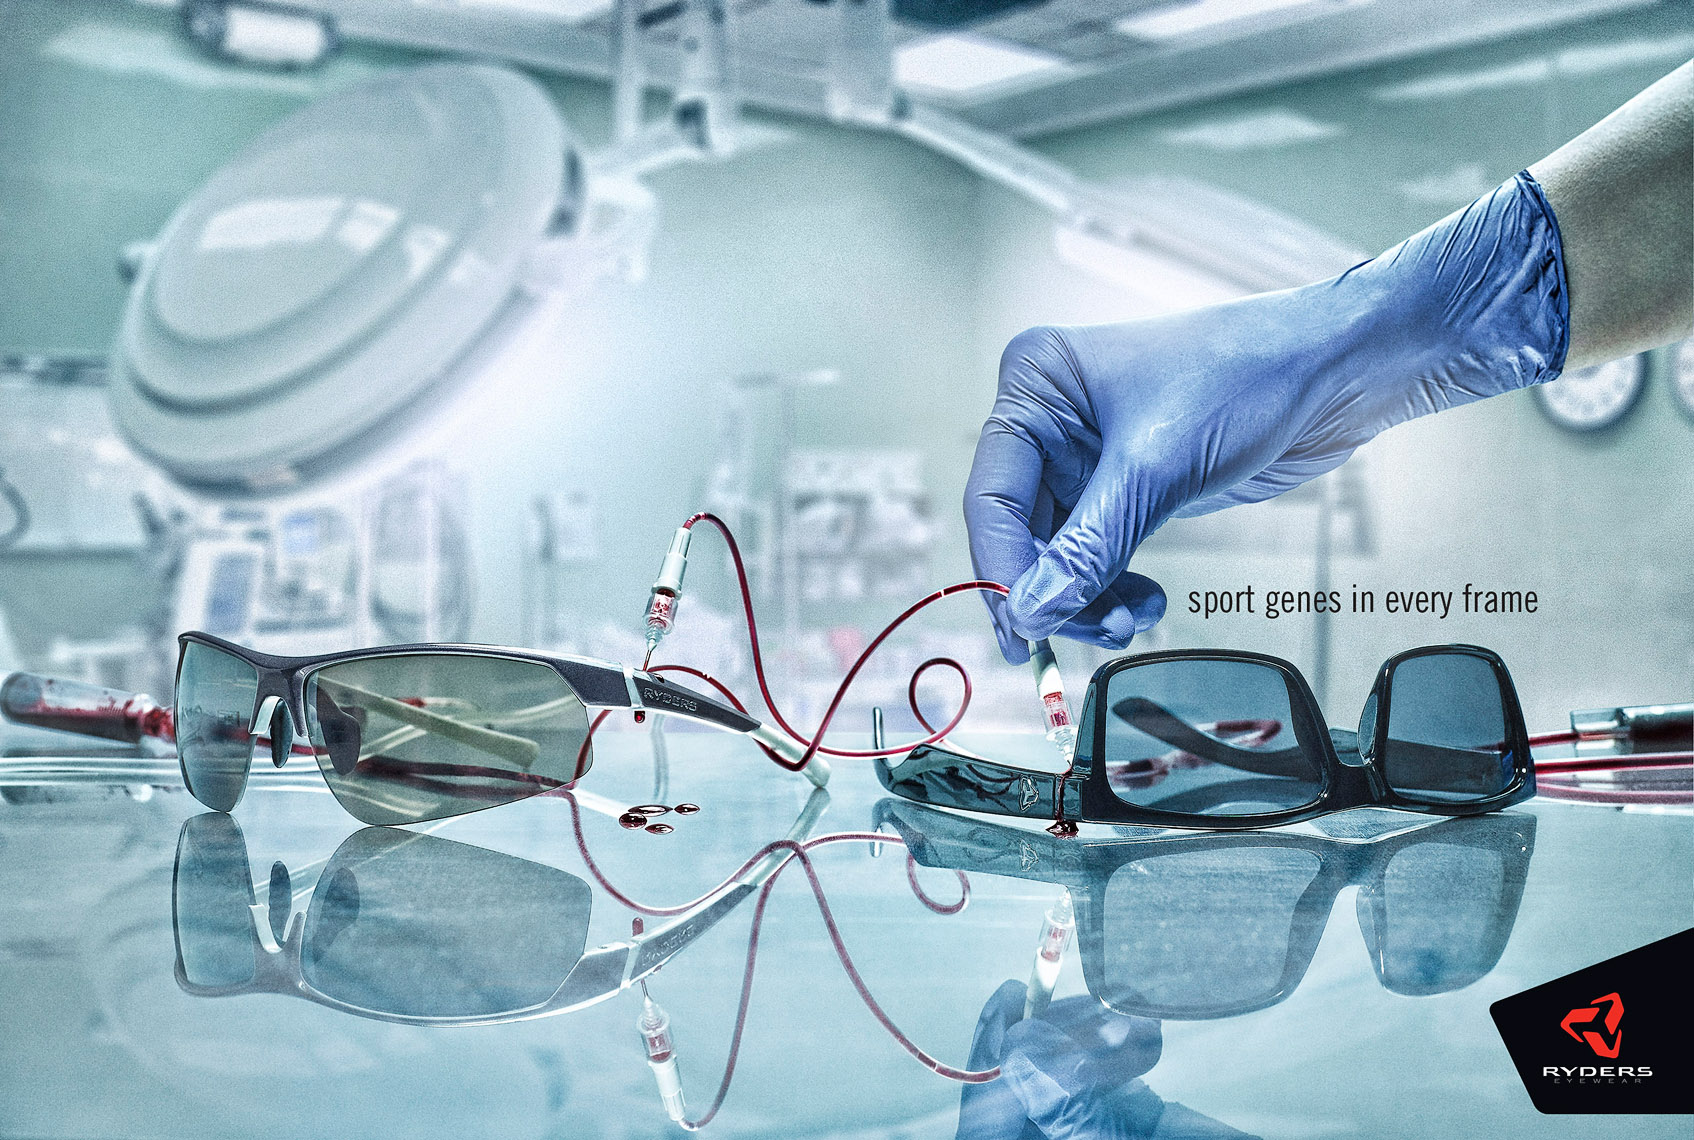 ryders eyewear hospital operating room sport genes blood transfusion ad